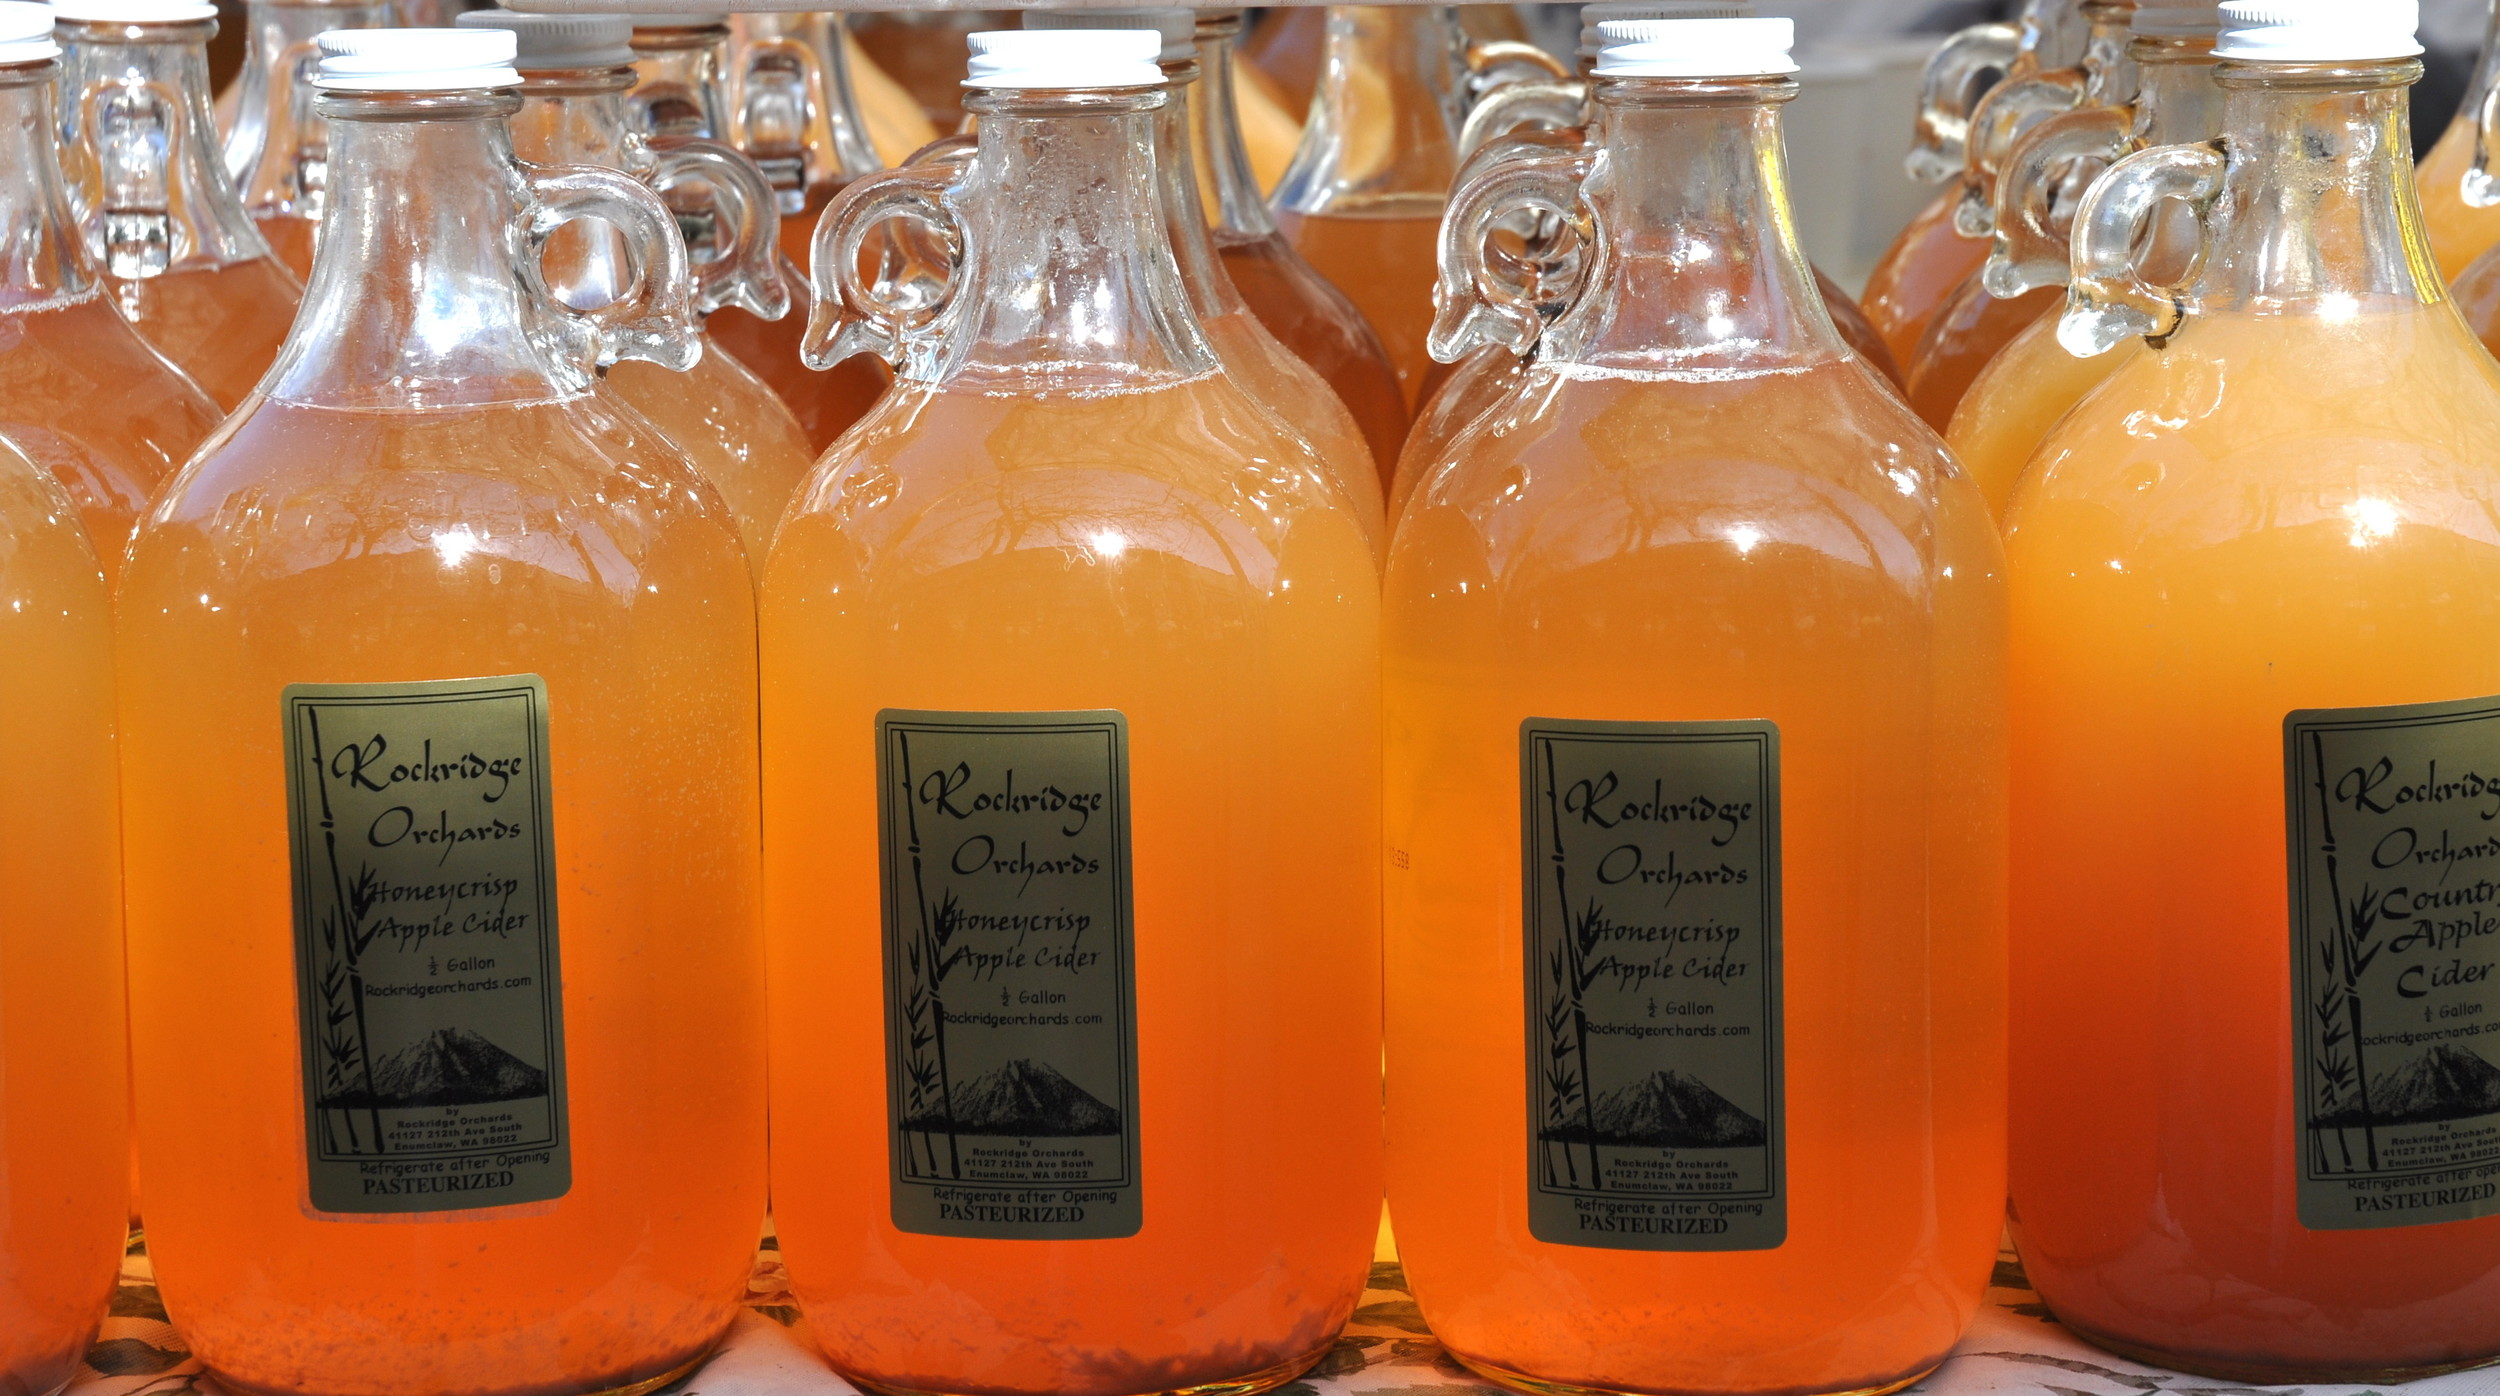 Honey Crisp Apple Cider from Rockridge Orchards. Photo copyright 2012 by Zachary D. Lyons.